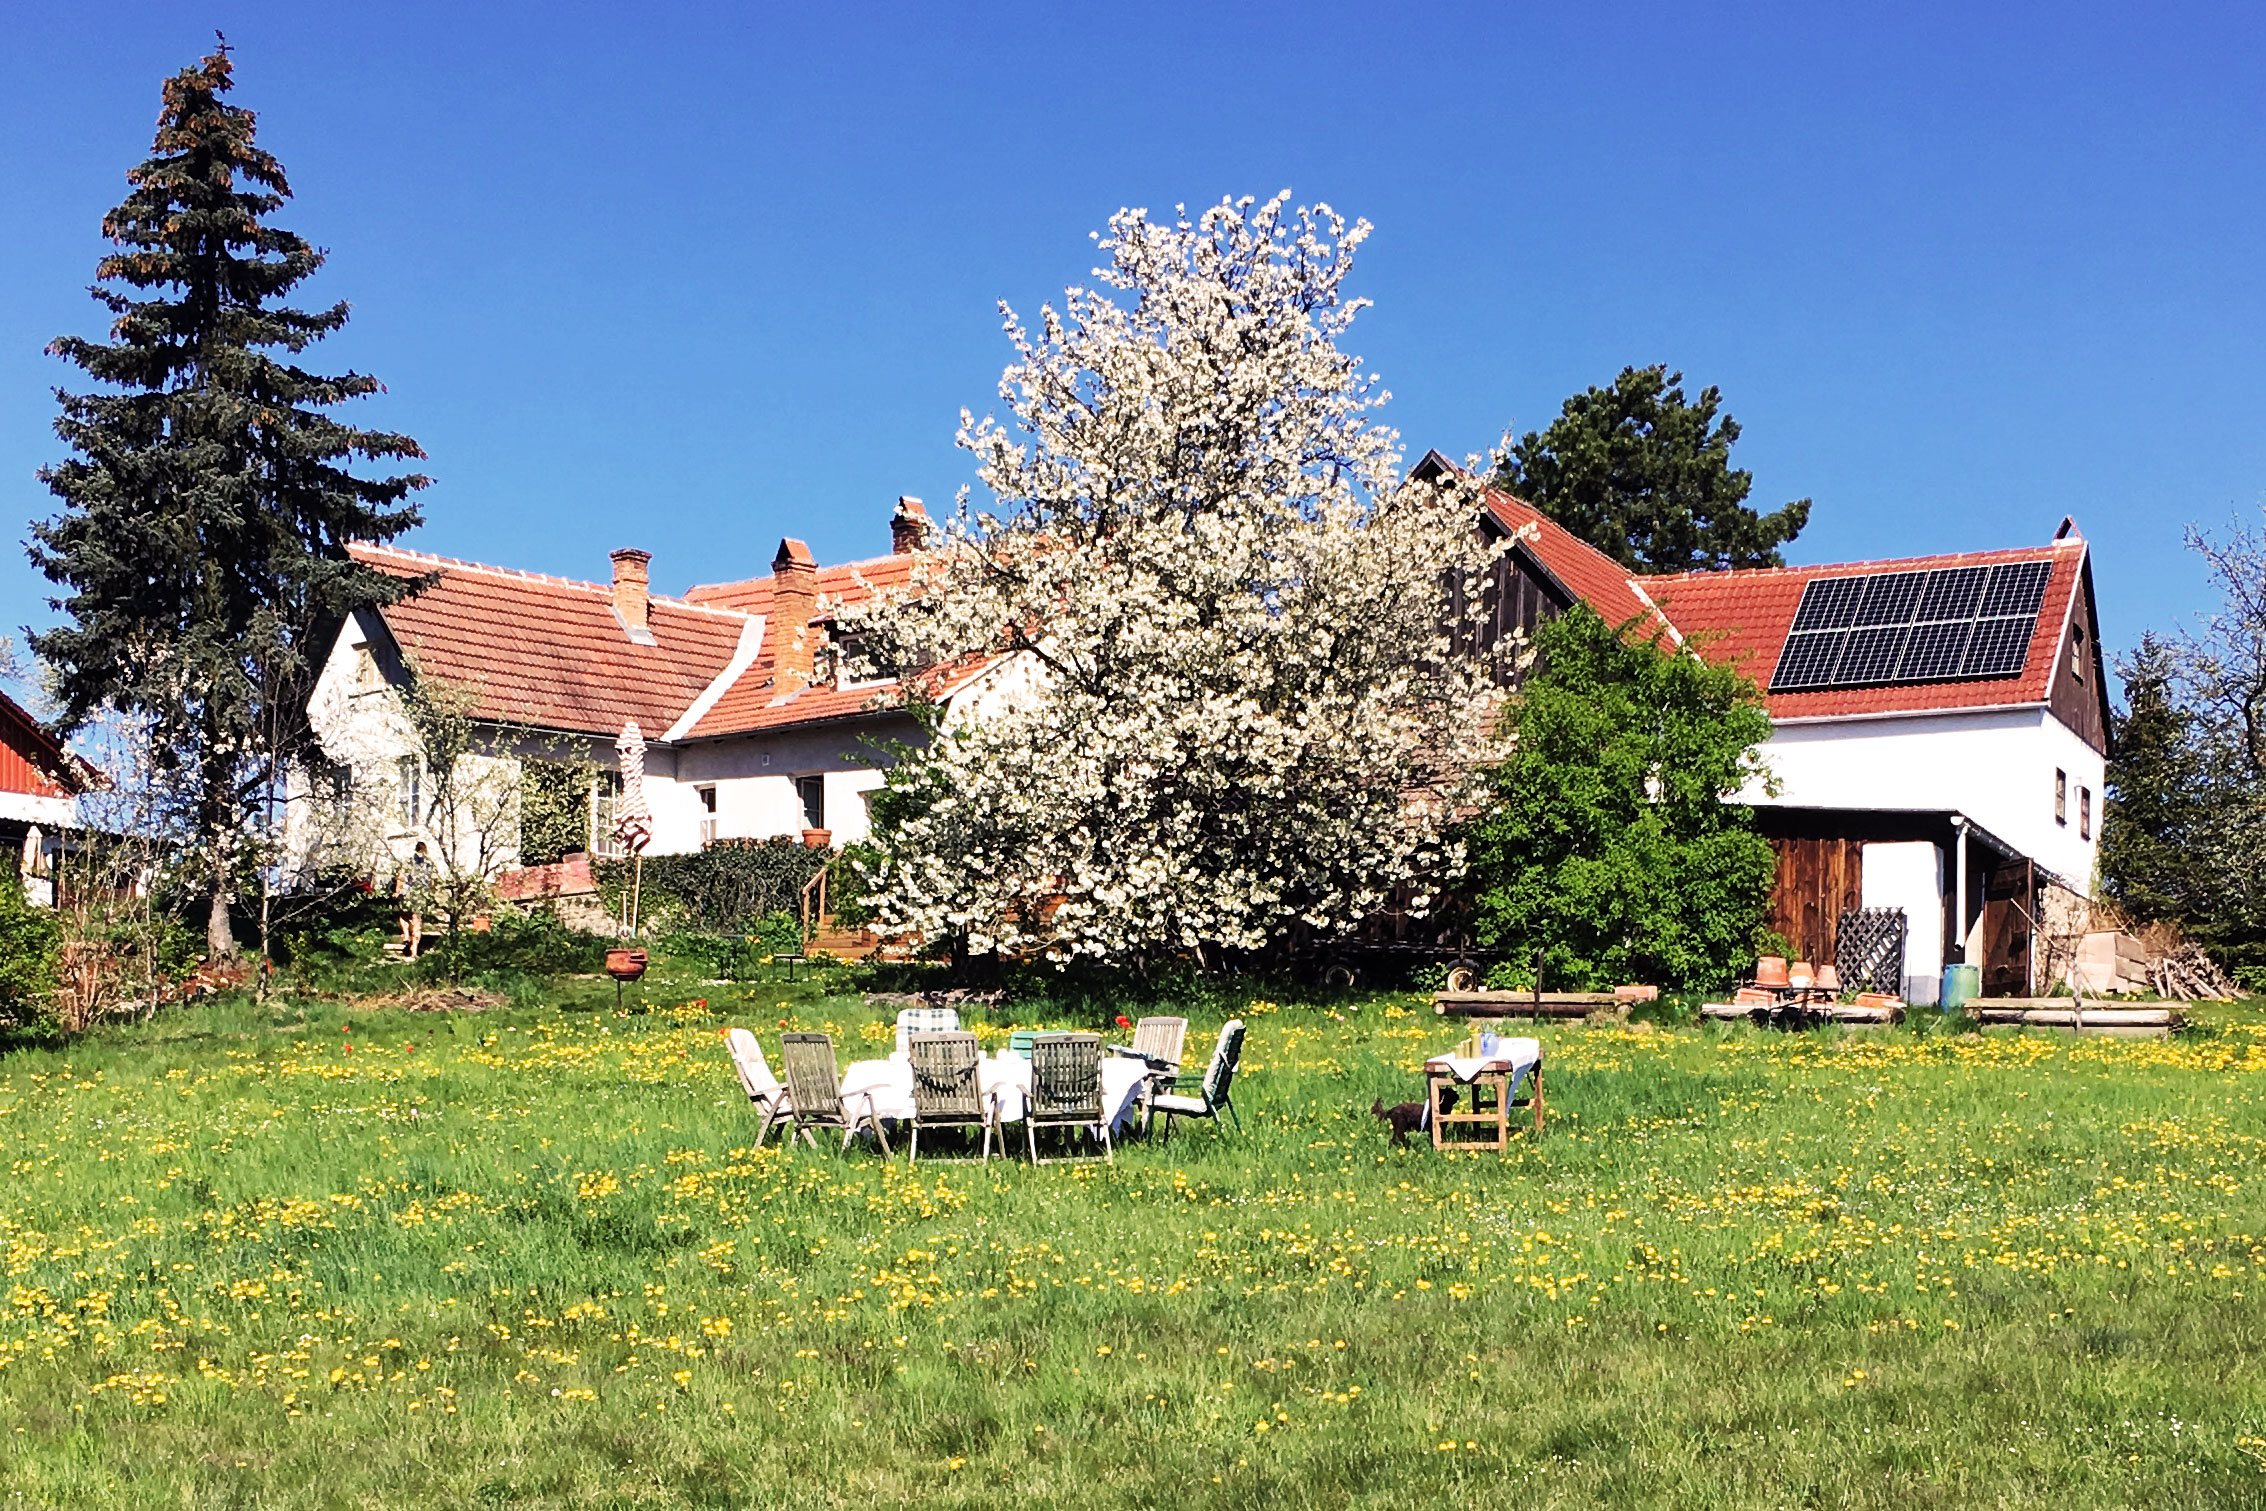 South-facing solar panels and cherry blossoms at an old farmhouse in Austria